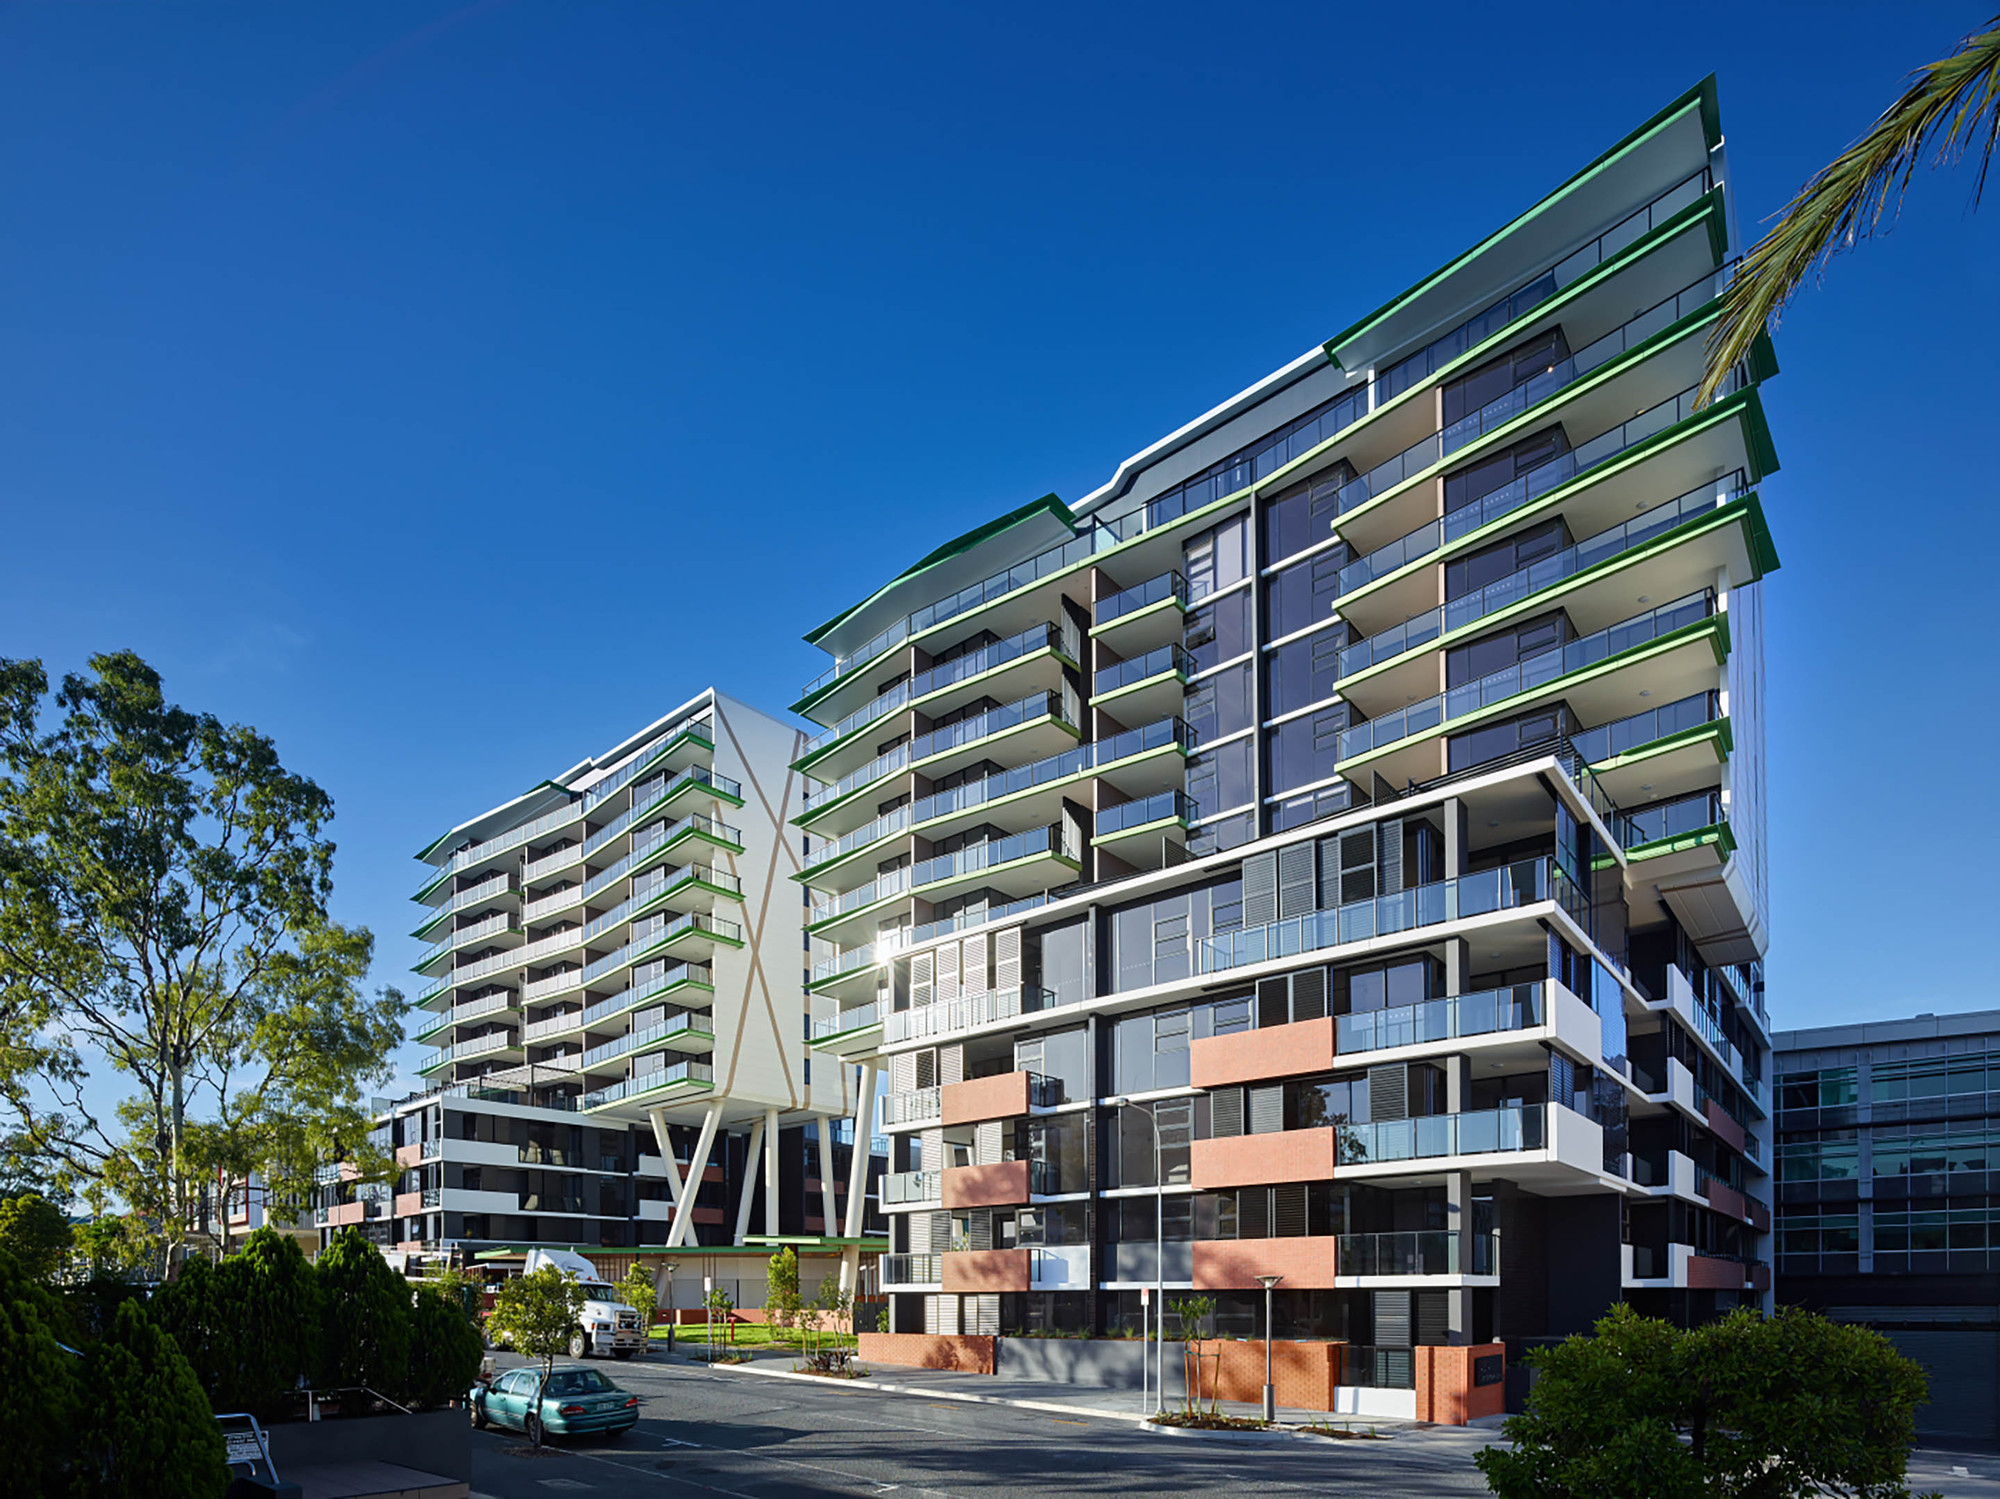 Arena Apartments / Ellivo Architects, © Scott Burrows